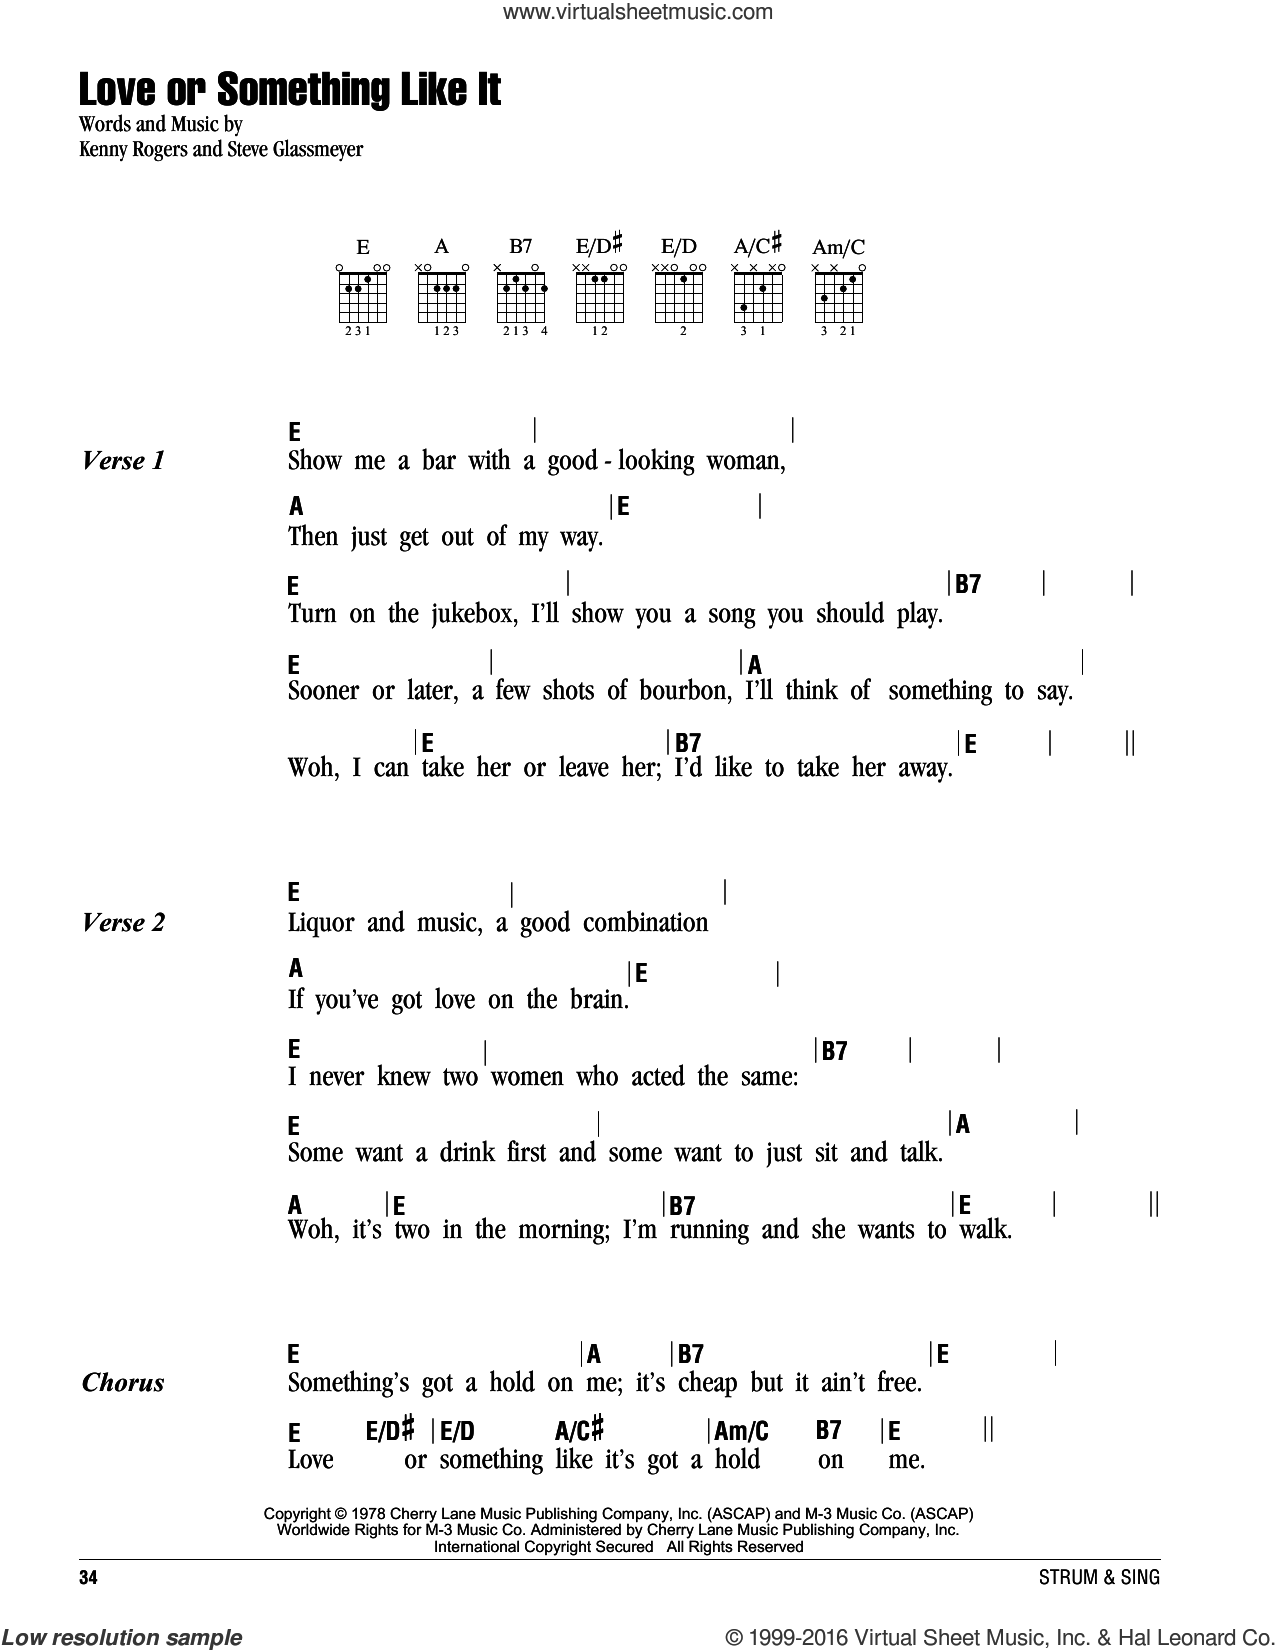 Love Or Something Like It sheet music for guitar (chords) by Kenny Rogers and Steve Glassmeyer, intermediate skill level